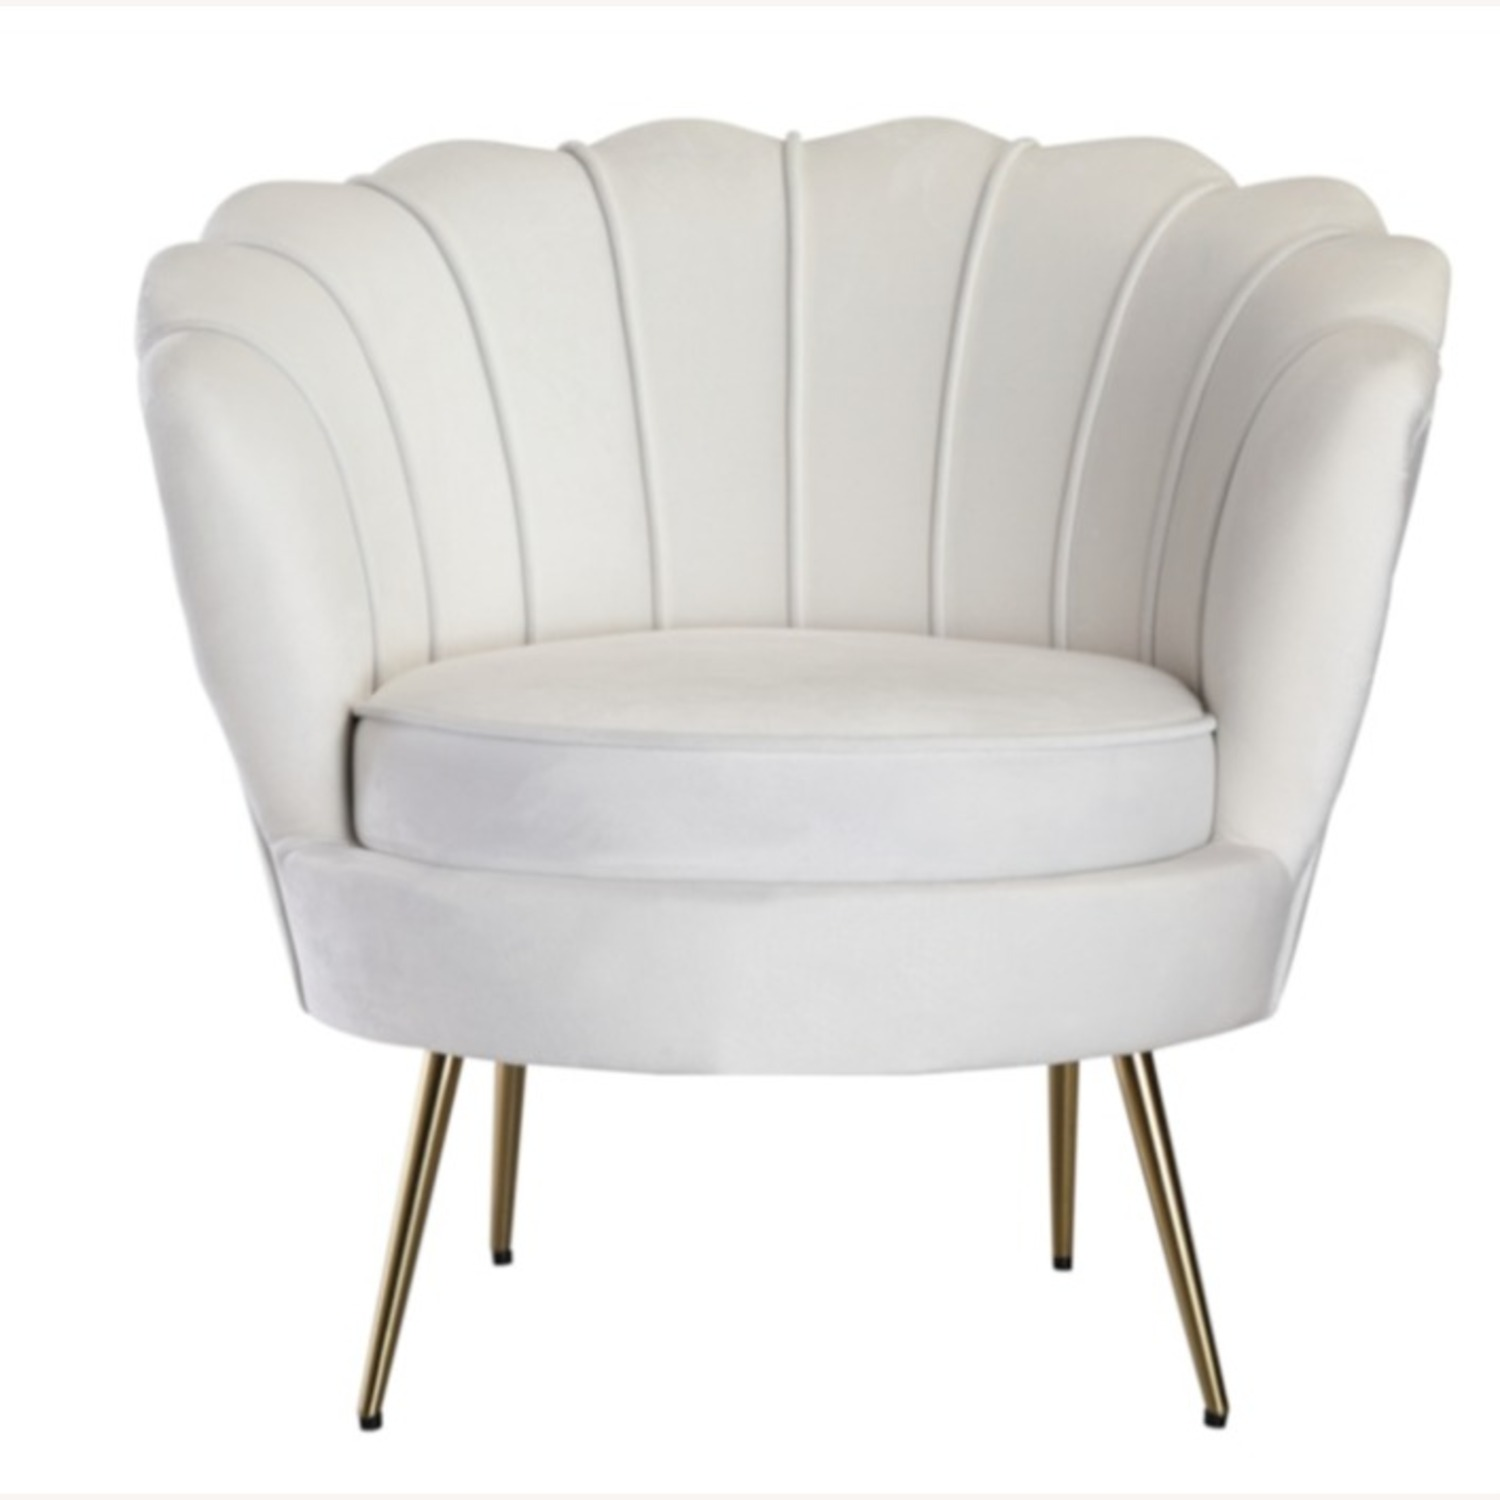 Modern Bridal Chair In White Suede Fabric - image-1